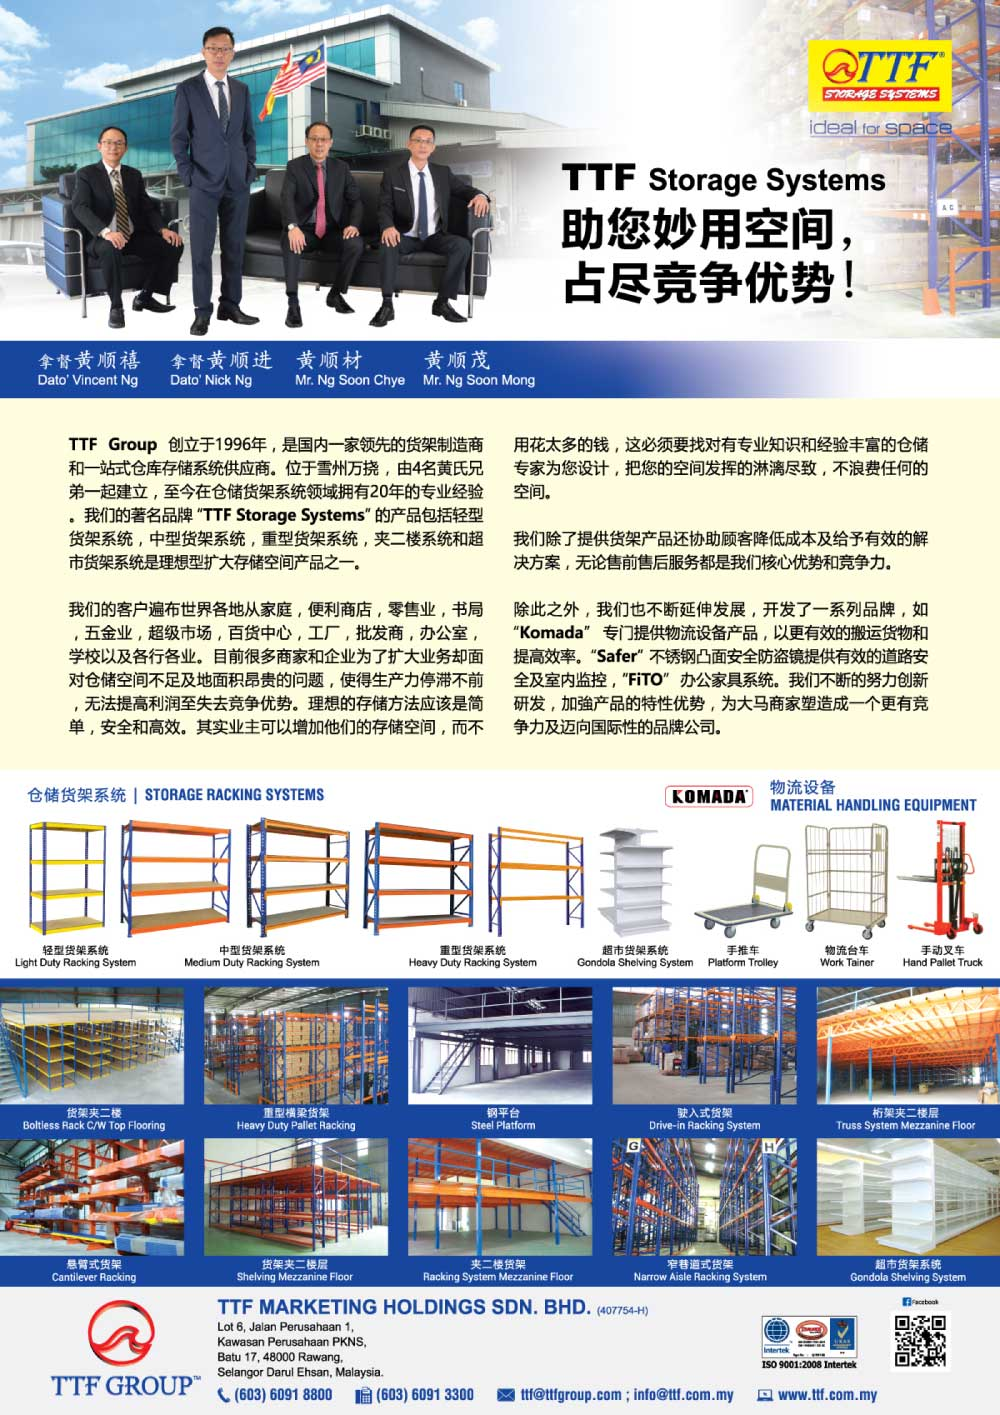 TTF Storage System - Ideal for Space --- SME Connect Magazine No. 37 Date: Nov 2016